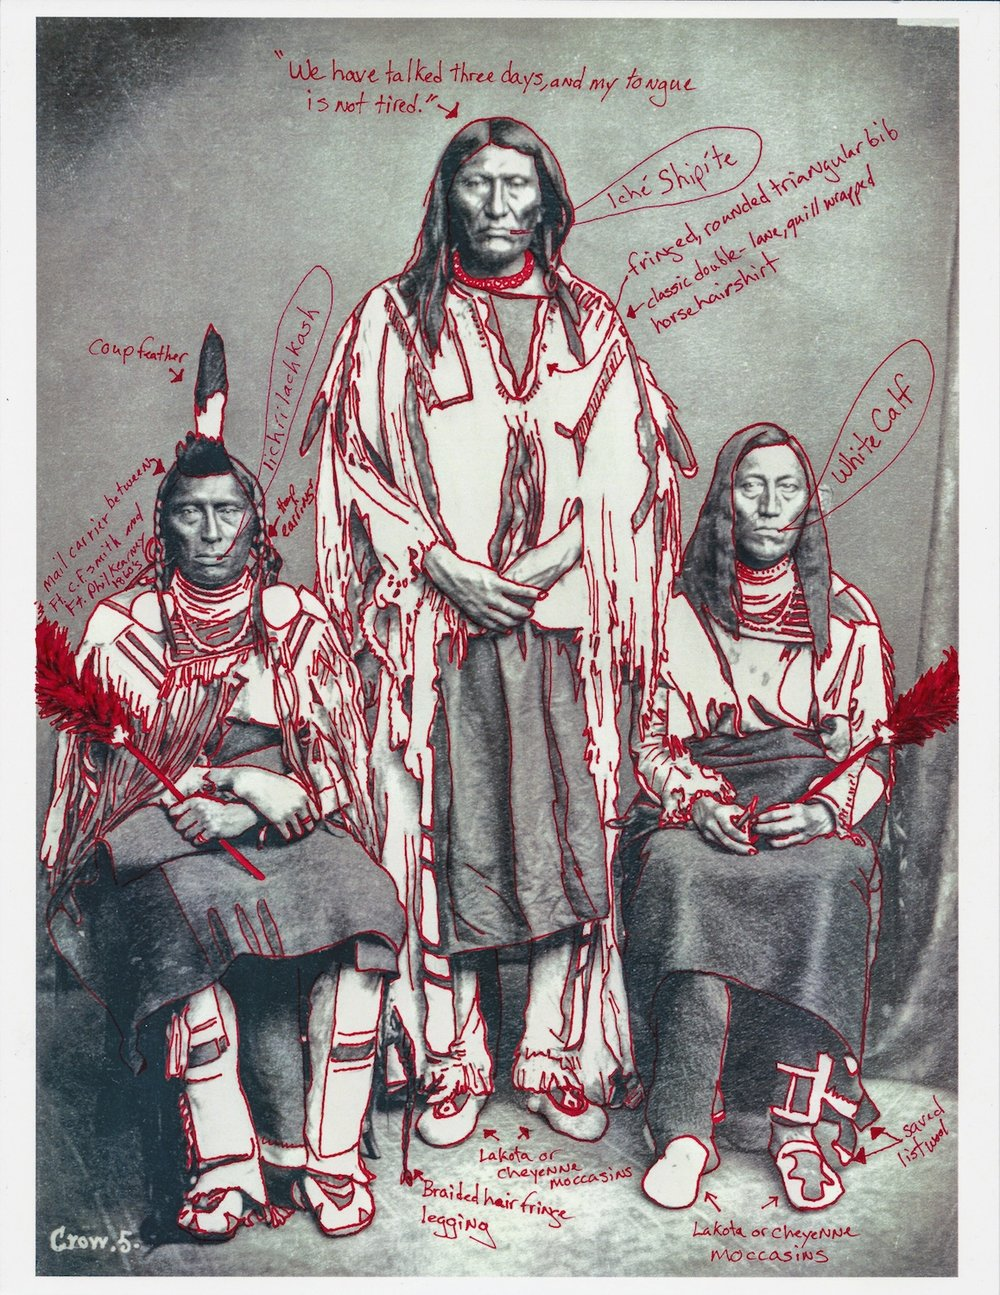 Wendy Red Star,  Group Portrait of Three Men, Mo-Mukh-Pi-Tche, Ella-Causs-Se (Thin Belly), and Pish-Ki-Ha-Di-Ri-Ky-Ish (One Who Leads The Old Dog)–1873 Peace Delegation Series , 2017. Pigment Print on Archival Photo-Paper, 17 x 25 in. (43.2 x 63.5 cm). Collection of the artist. © Wendy Red Star.